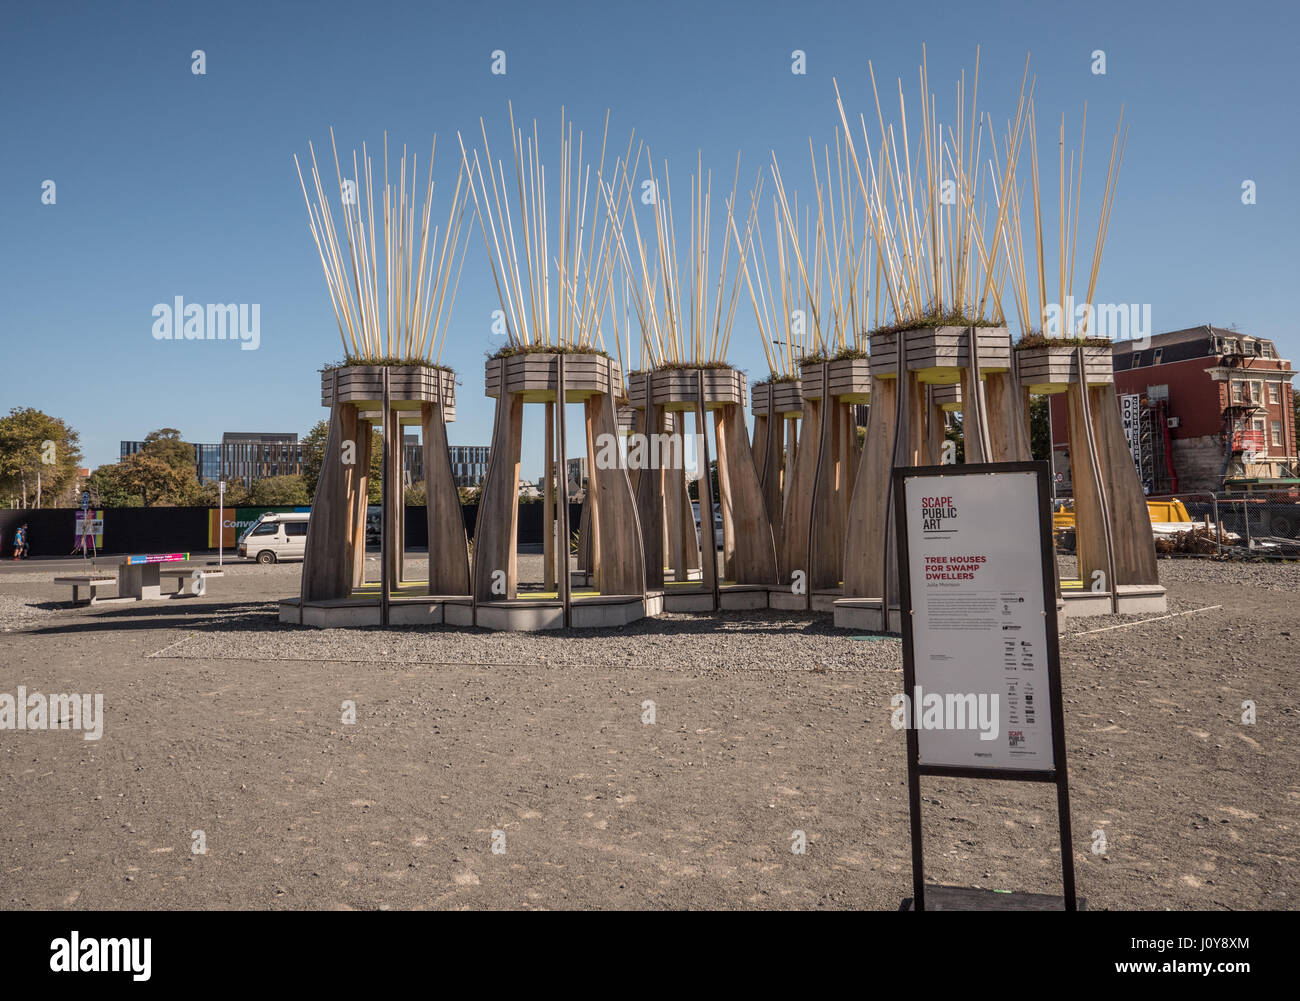 Tree Houses for Swamp Dwellers art installation by Julia Morrison, Christchurch, New Zealand. - Stock Image